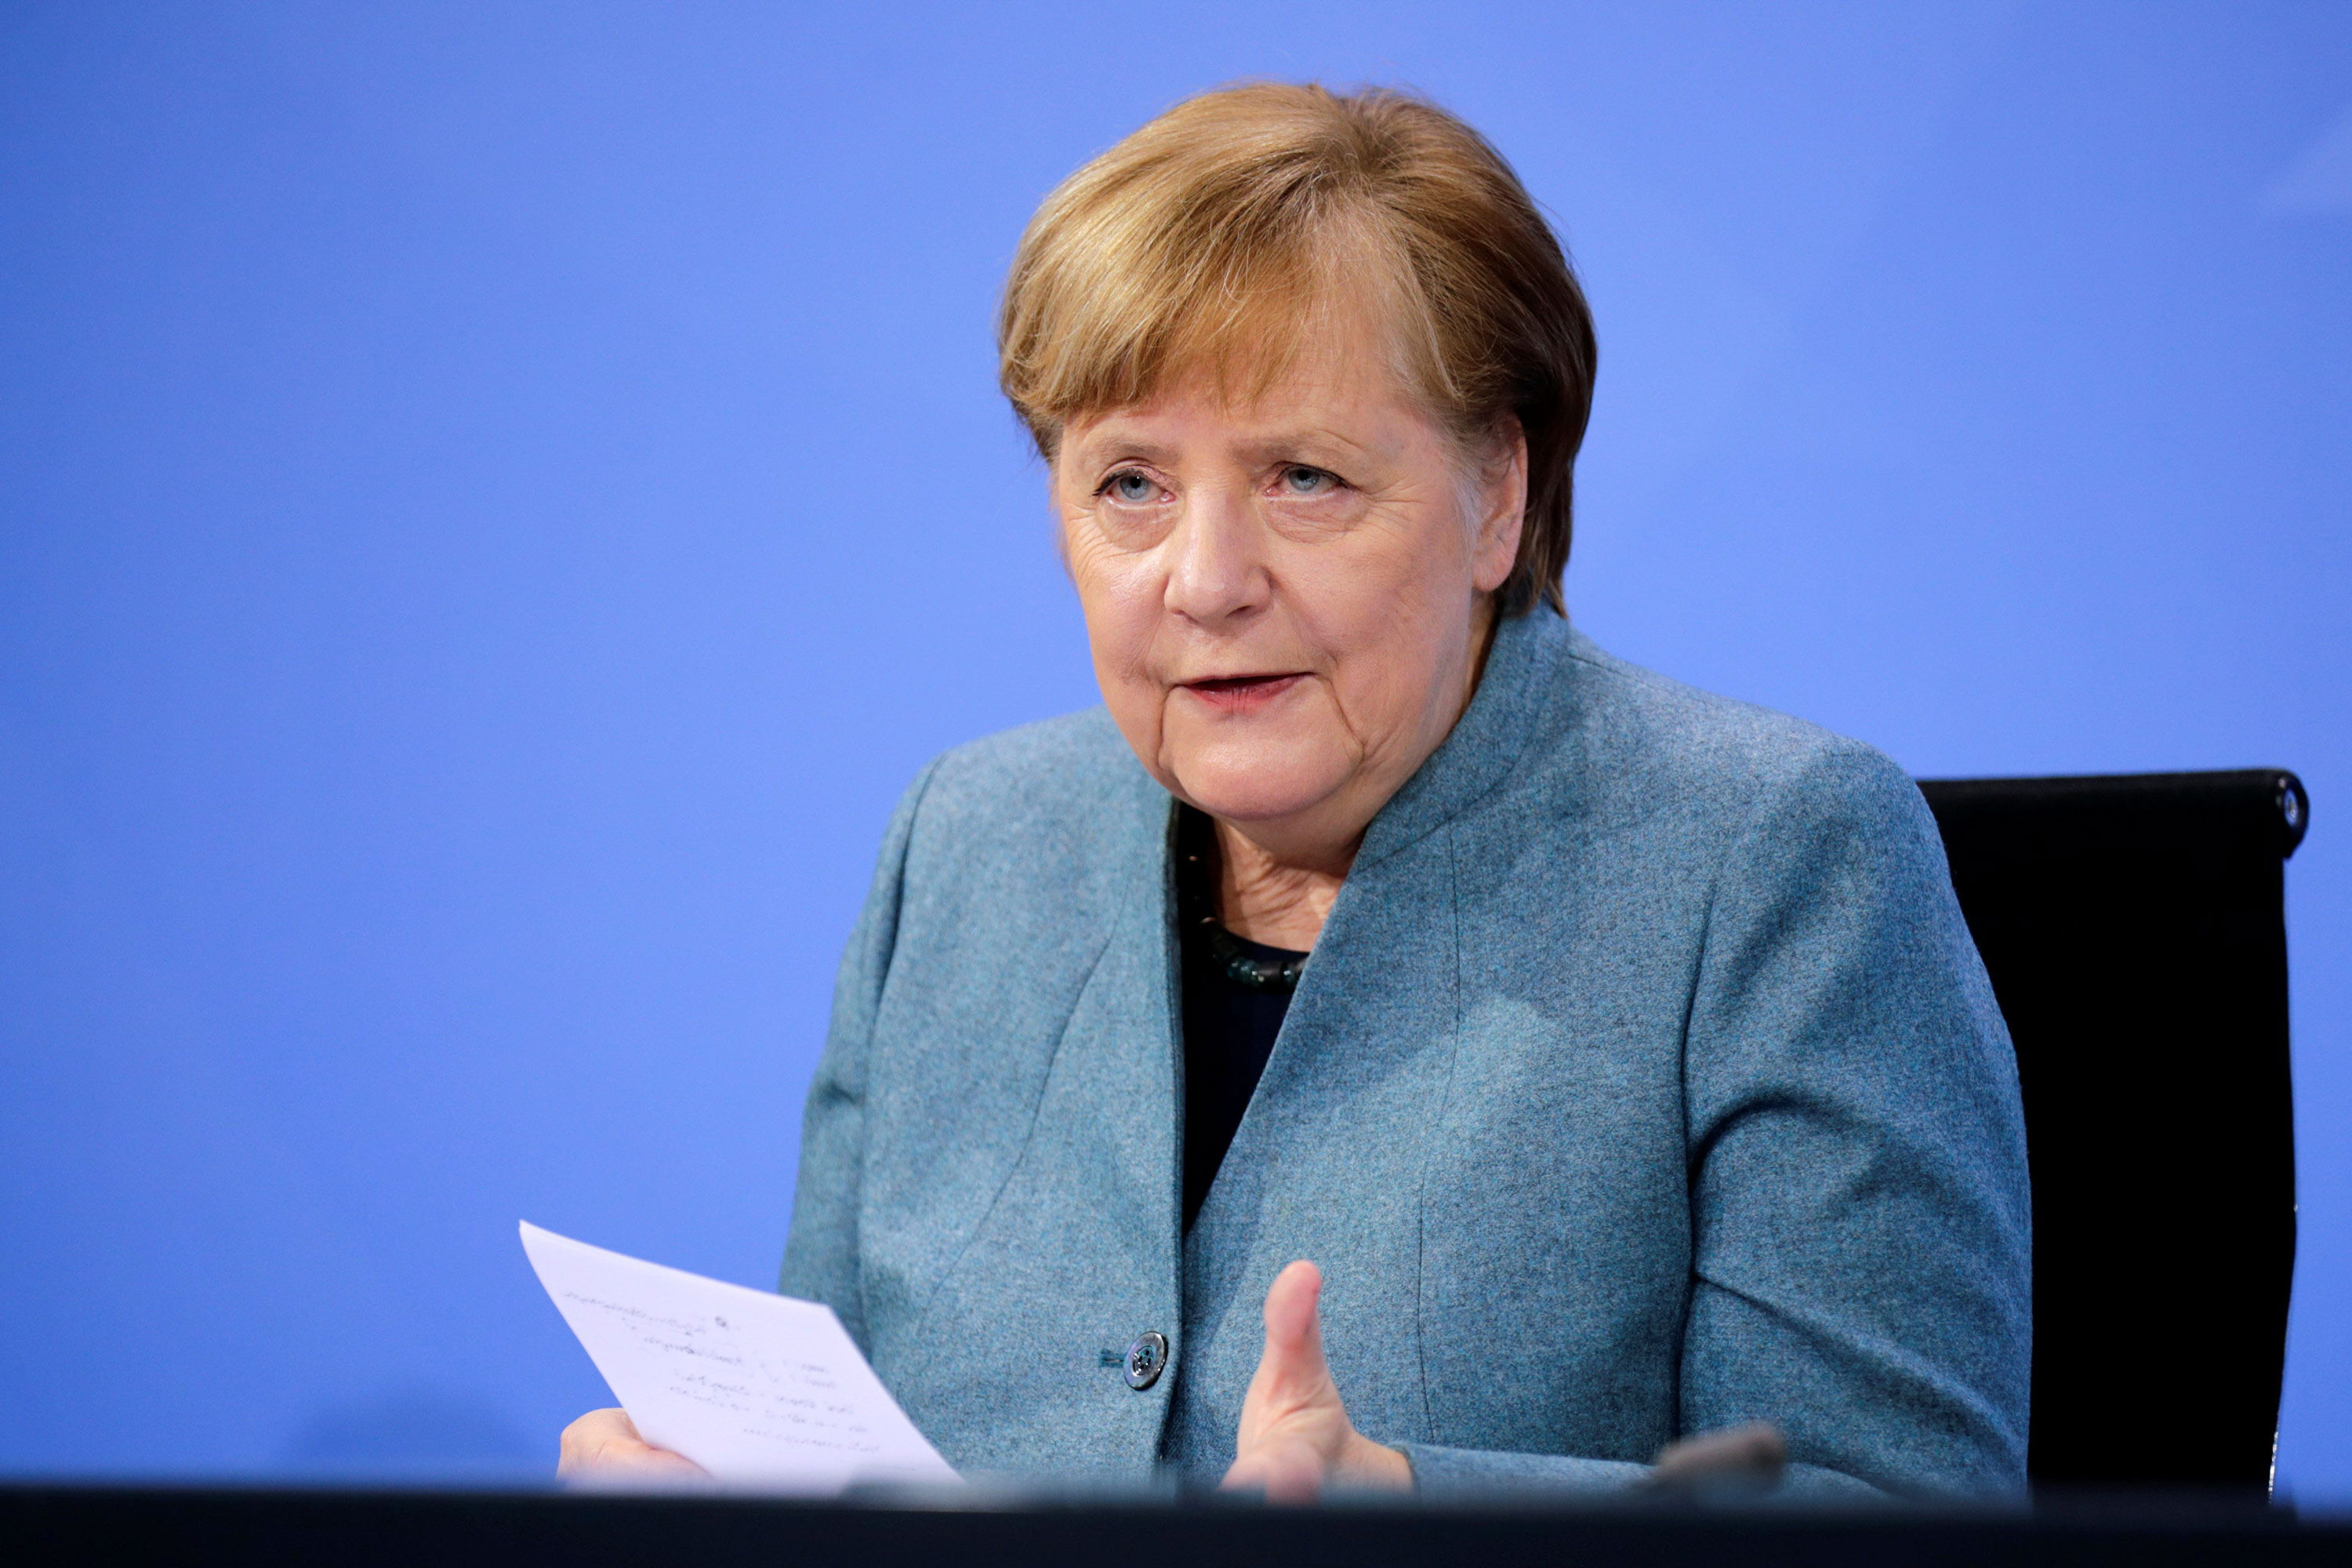 German Chancellor Angela Merkel holds a news conference in Berlin on February 1.